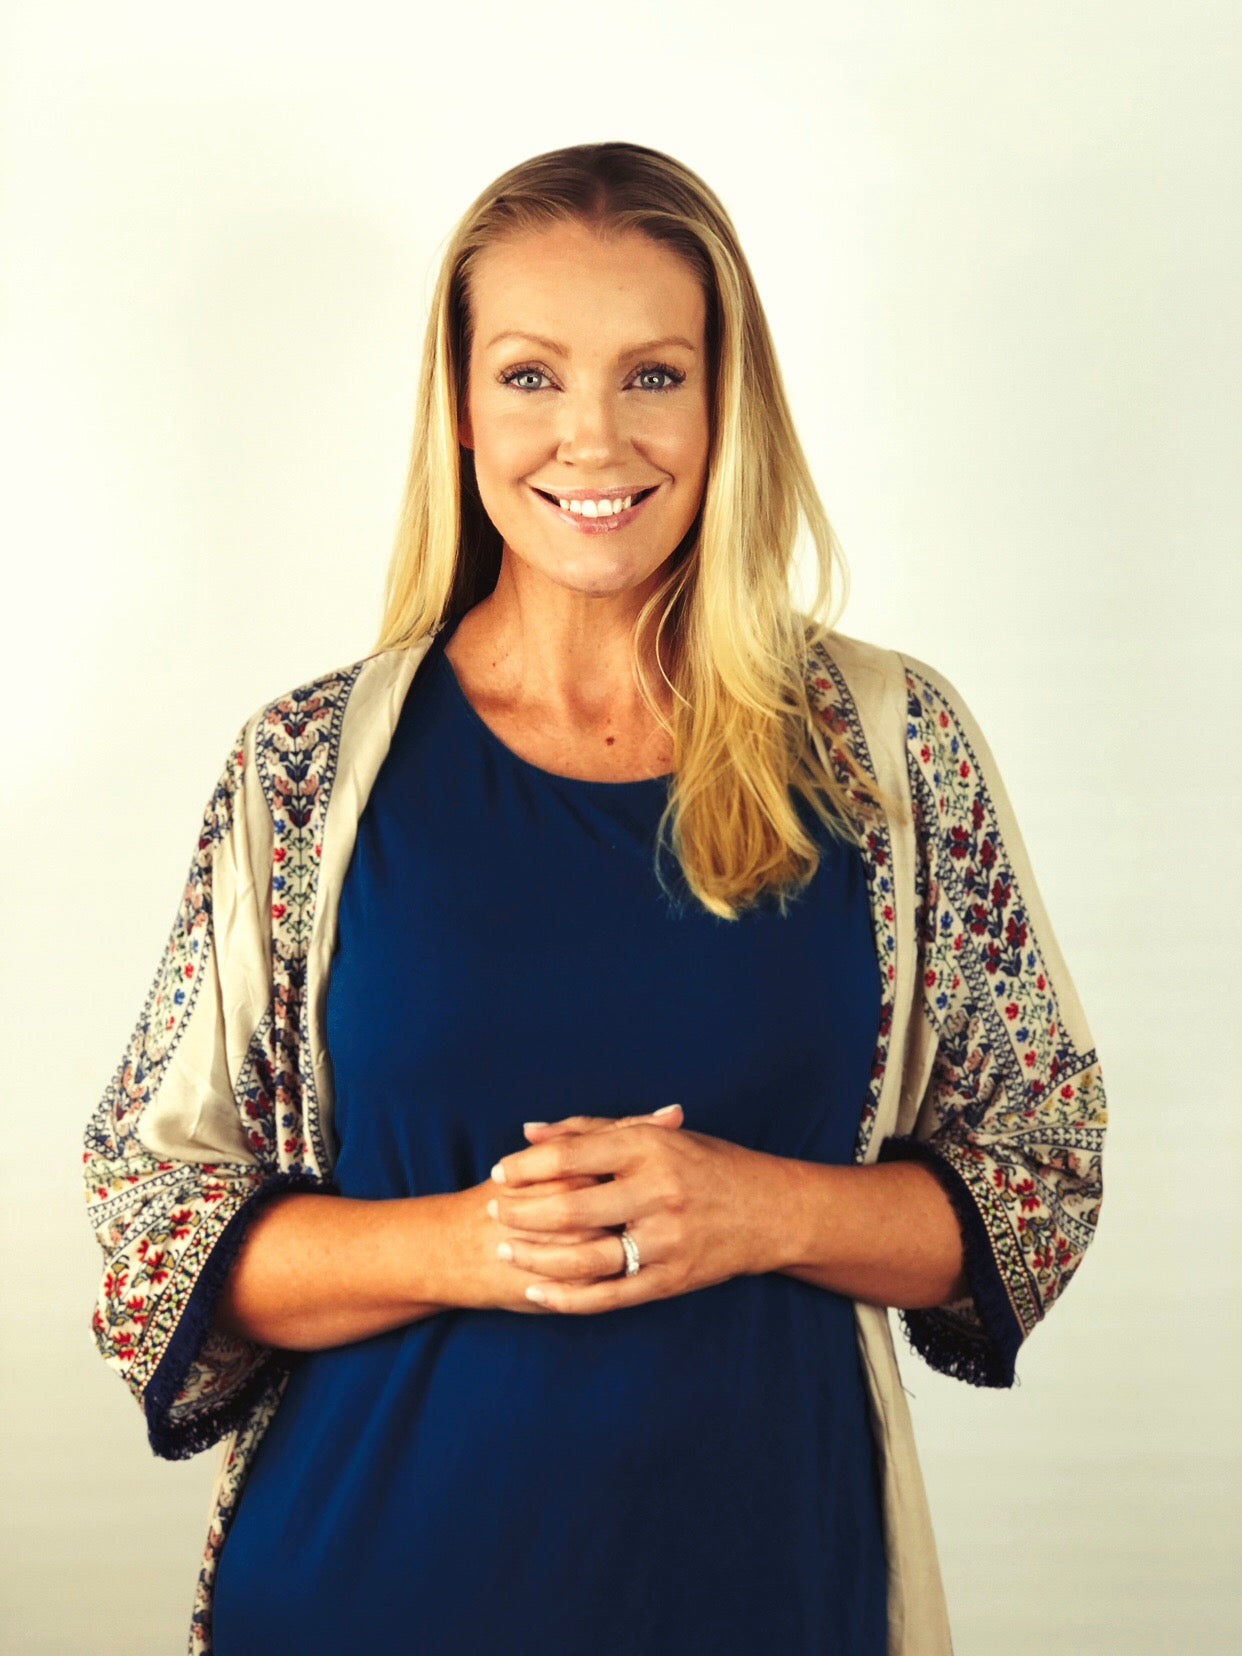 MEET ELIZABETH HOLZIGAL – OUR RESIDENT NUTRITIONAL HEALTH COACH.